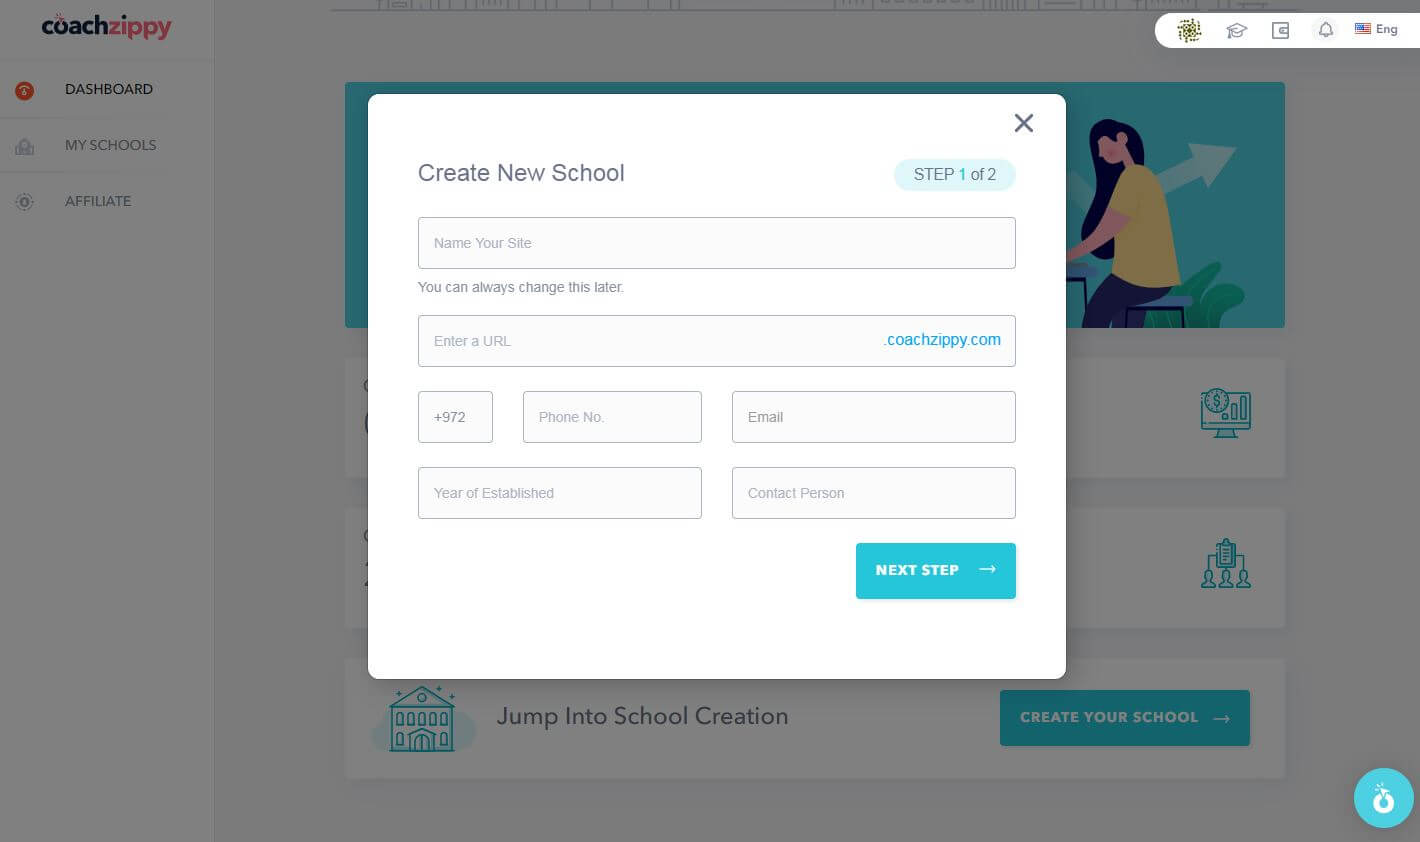 CoachZippy - Create New School